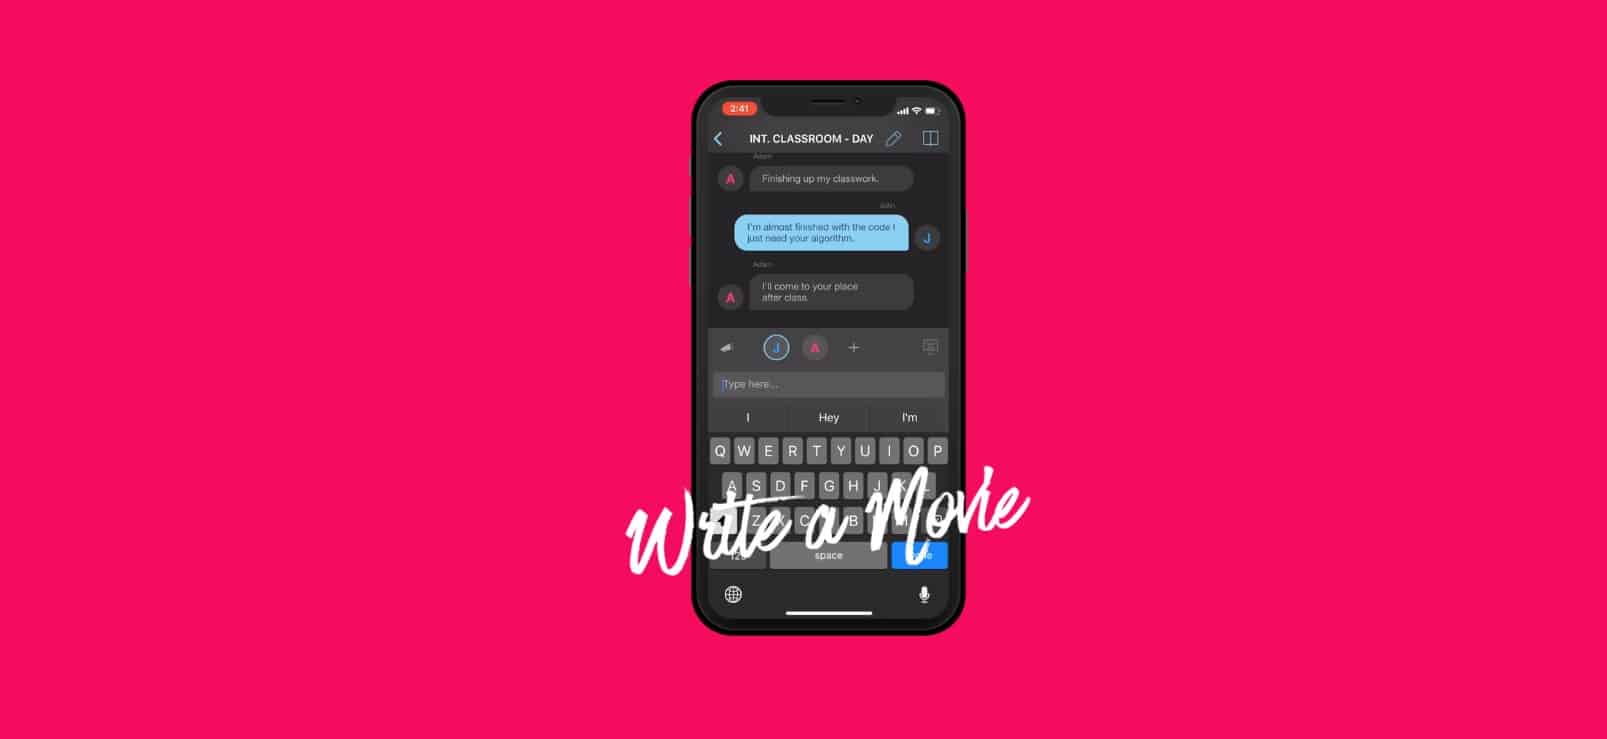 Write movie dialog as if you were writing text messages.